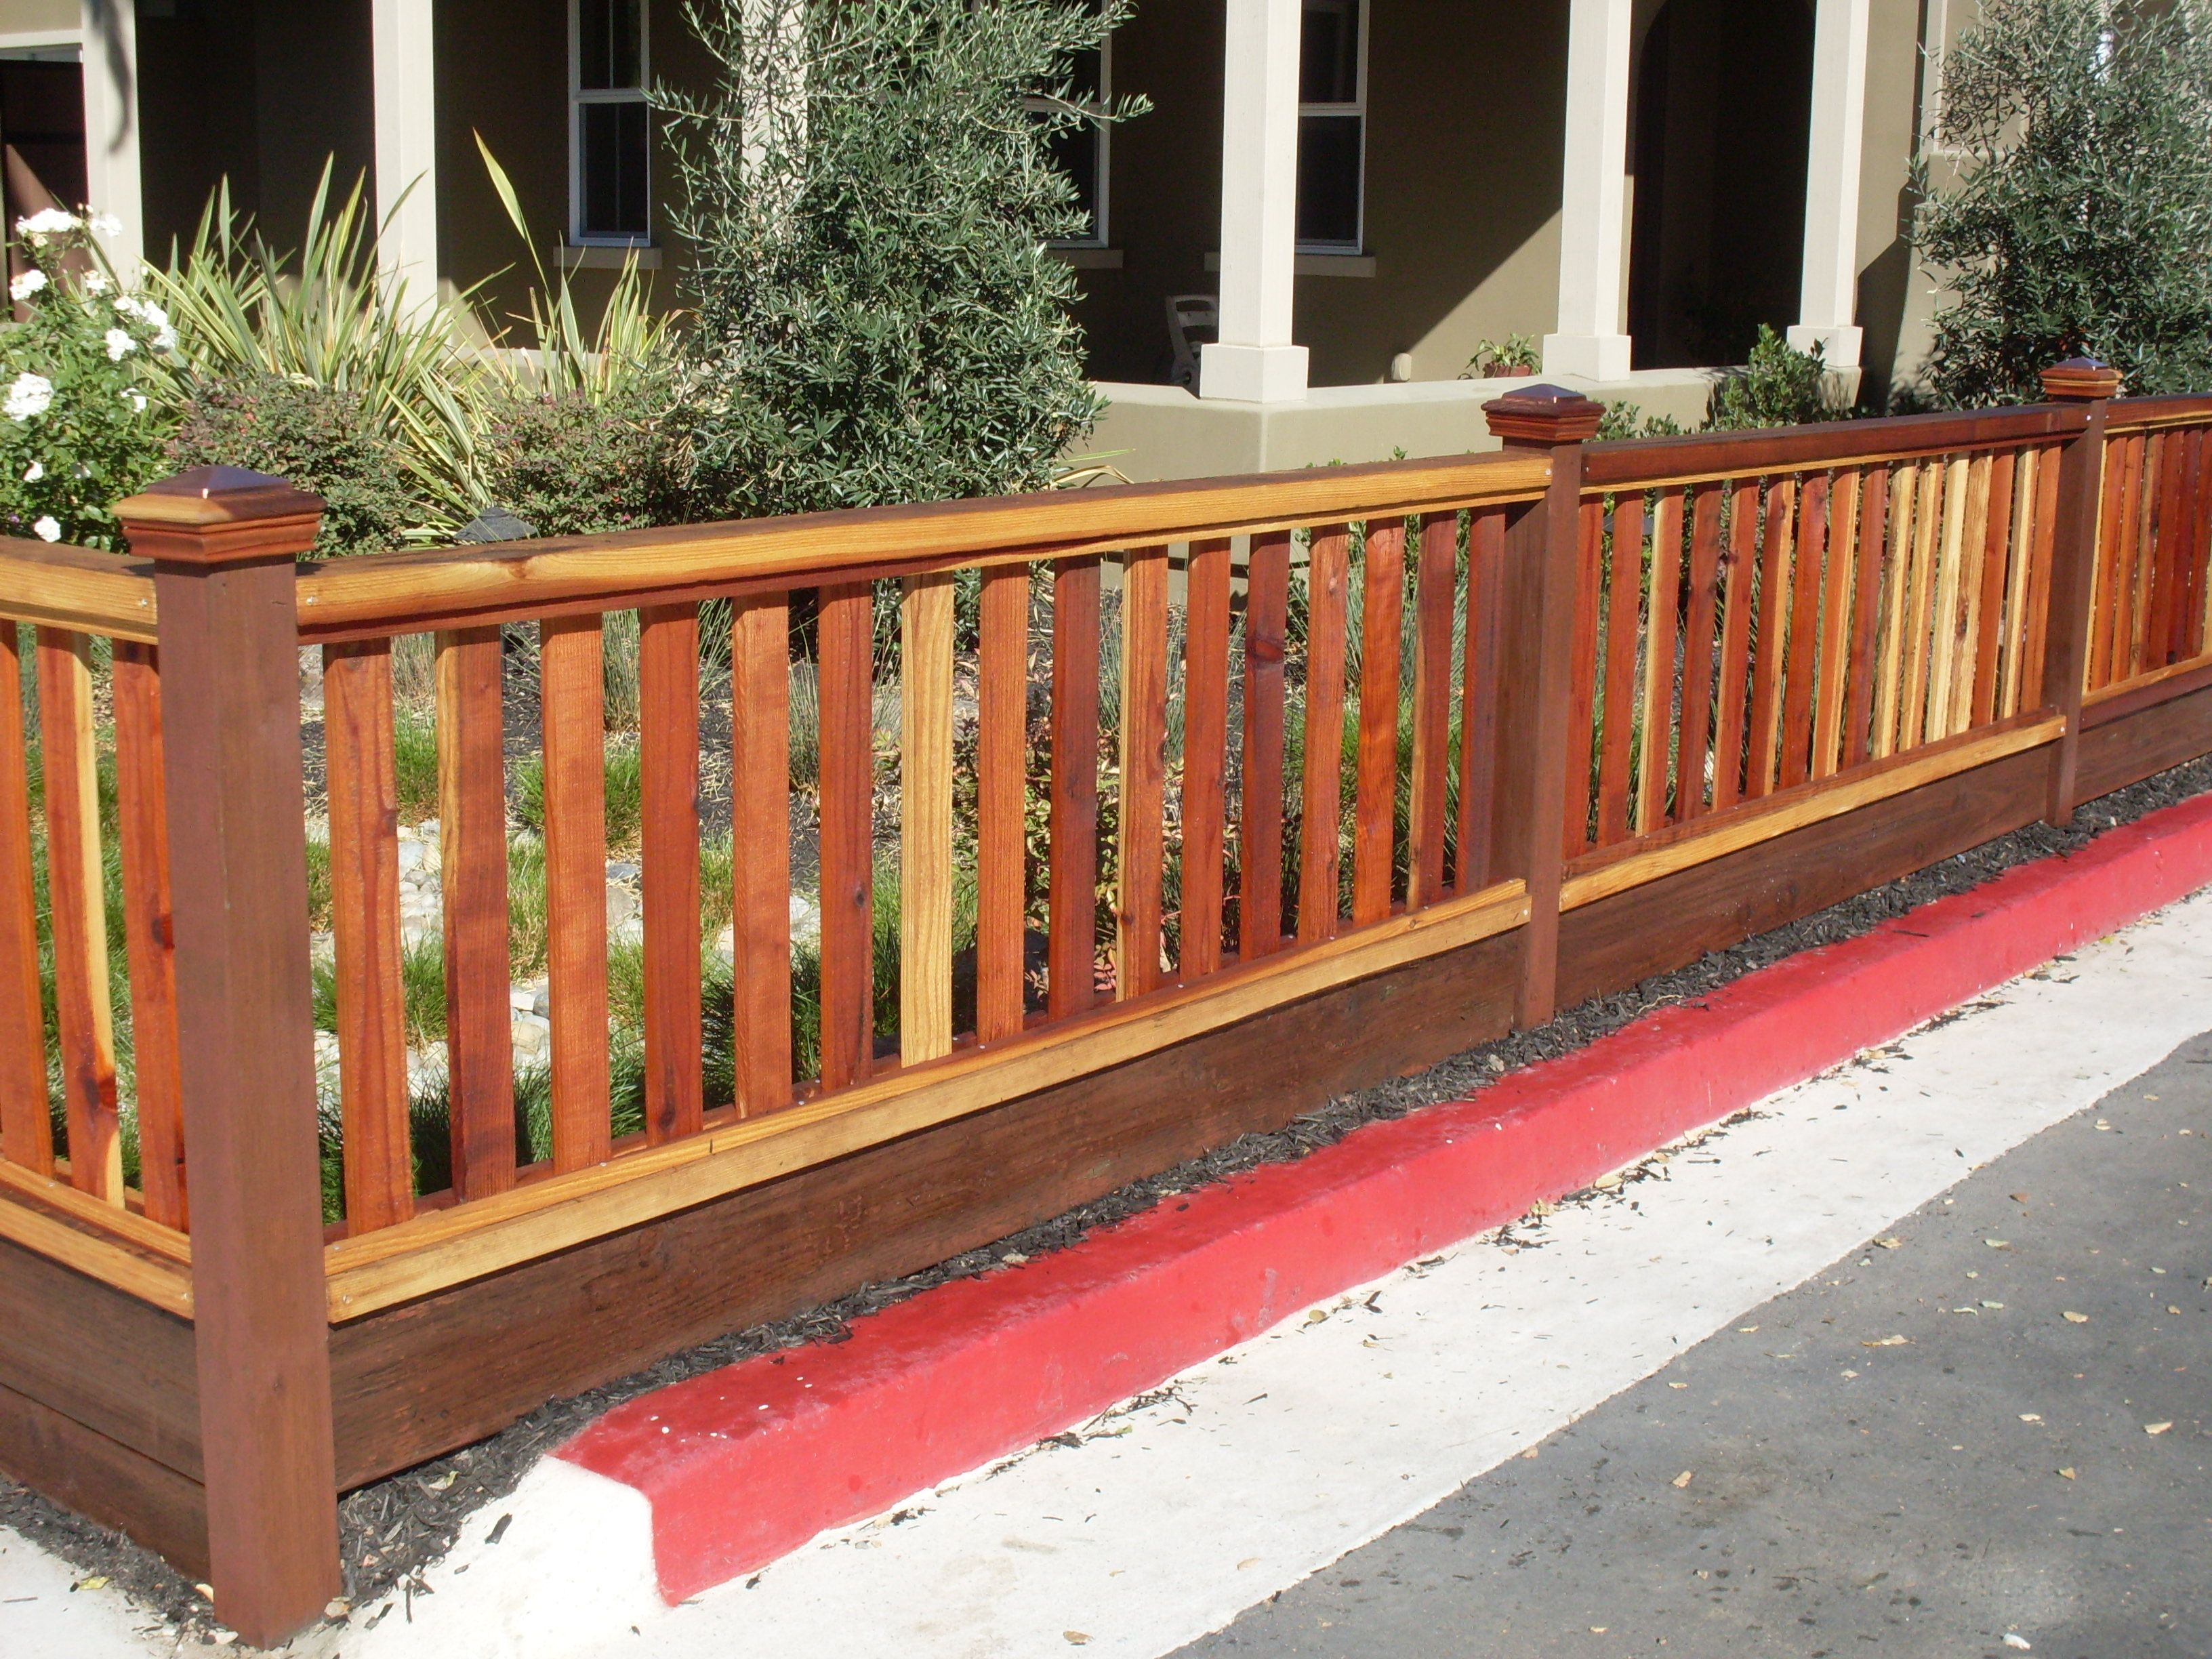 24da9fb61445d3ac45f88cc3cd90061a - 20+ Small House Gate Low Cost Concrete Fence Design Philippines PNG